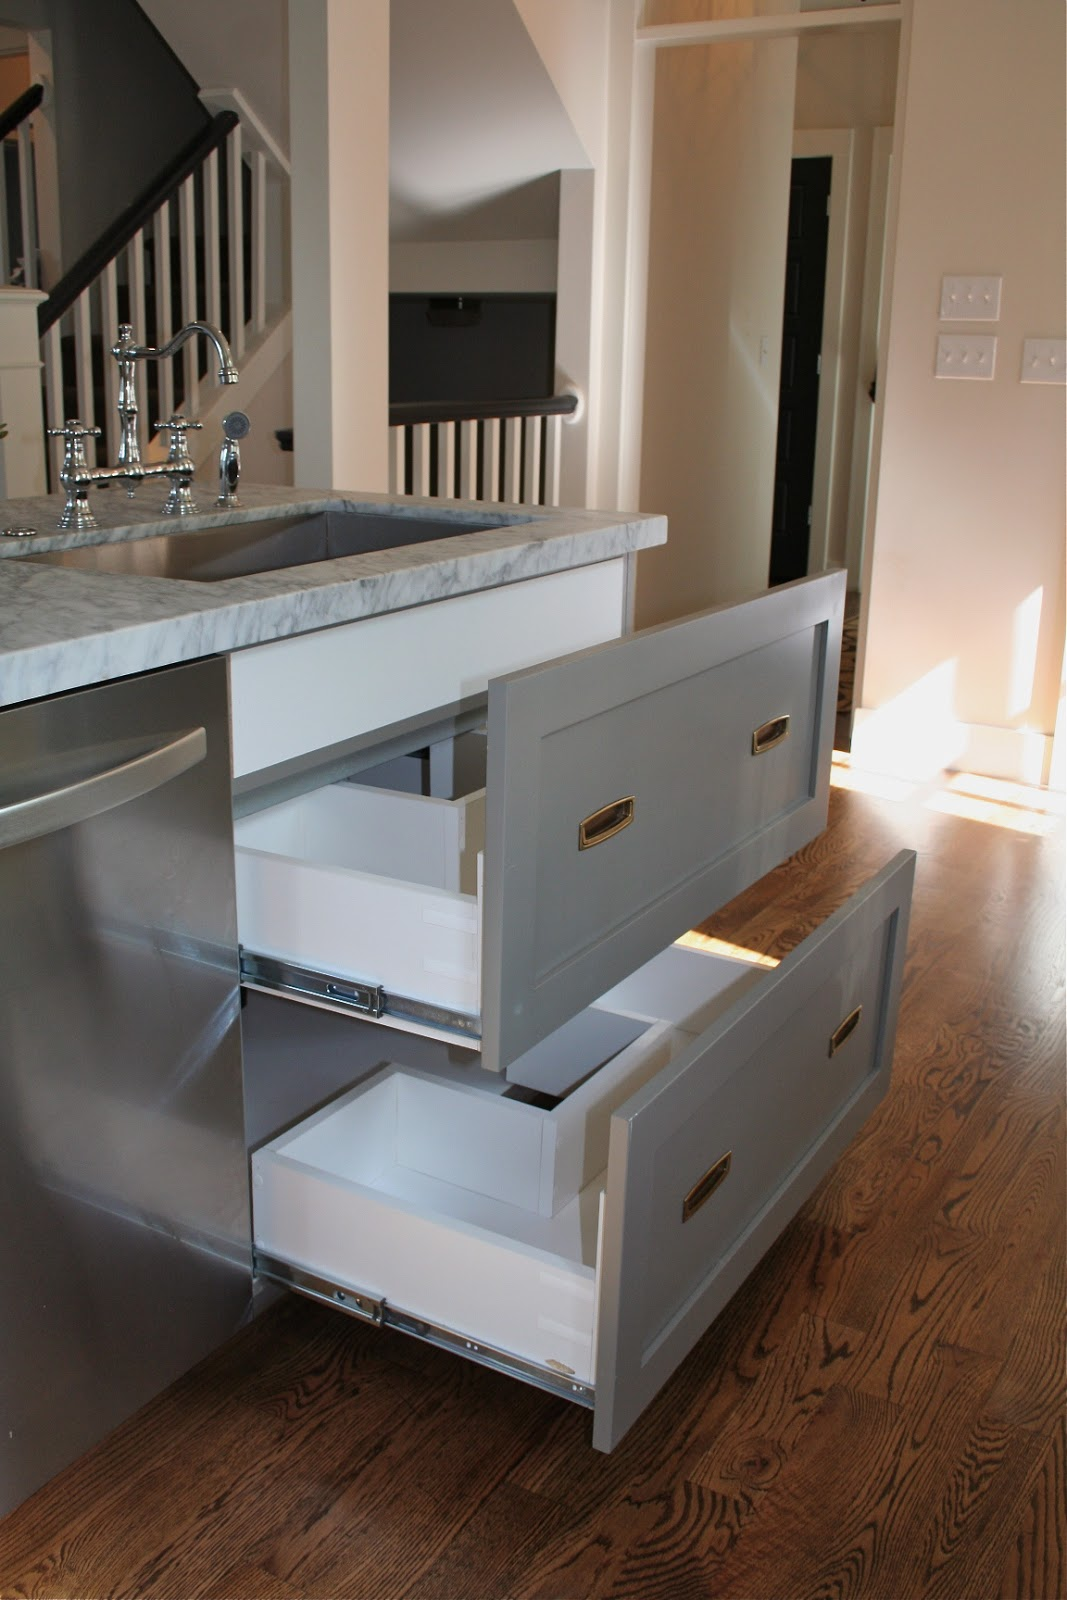 Costco Kitchen Stainless Steel Prep Table Design Dump: Drawers Under The Sink